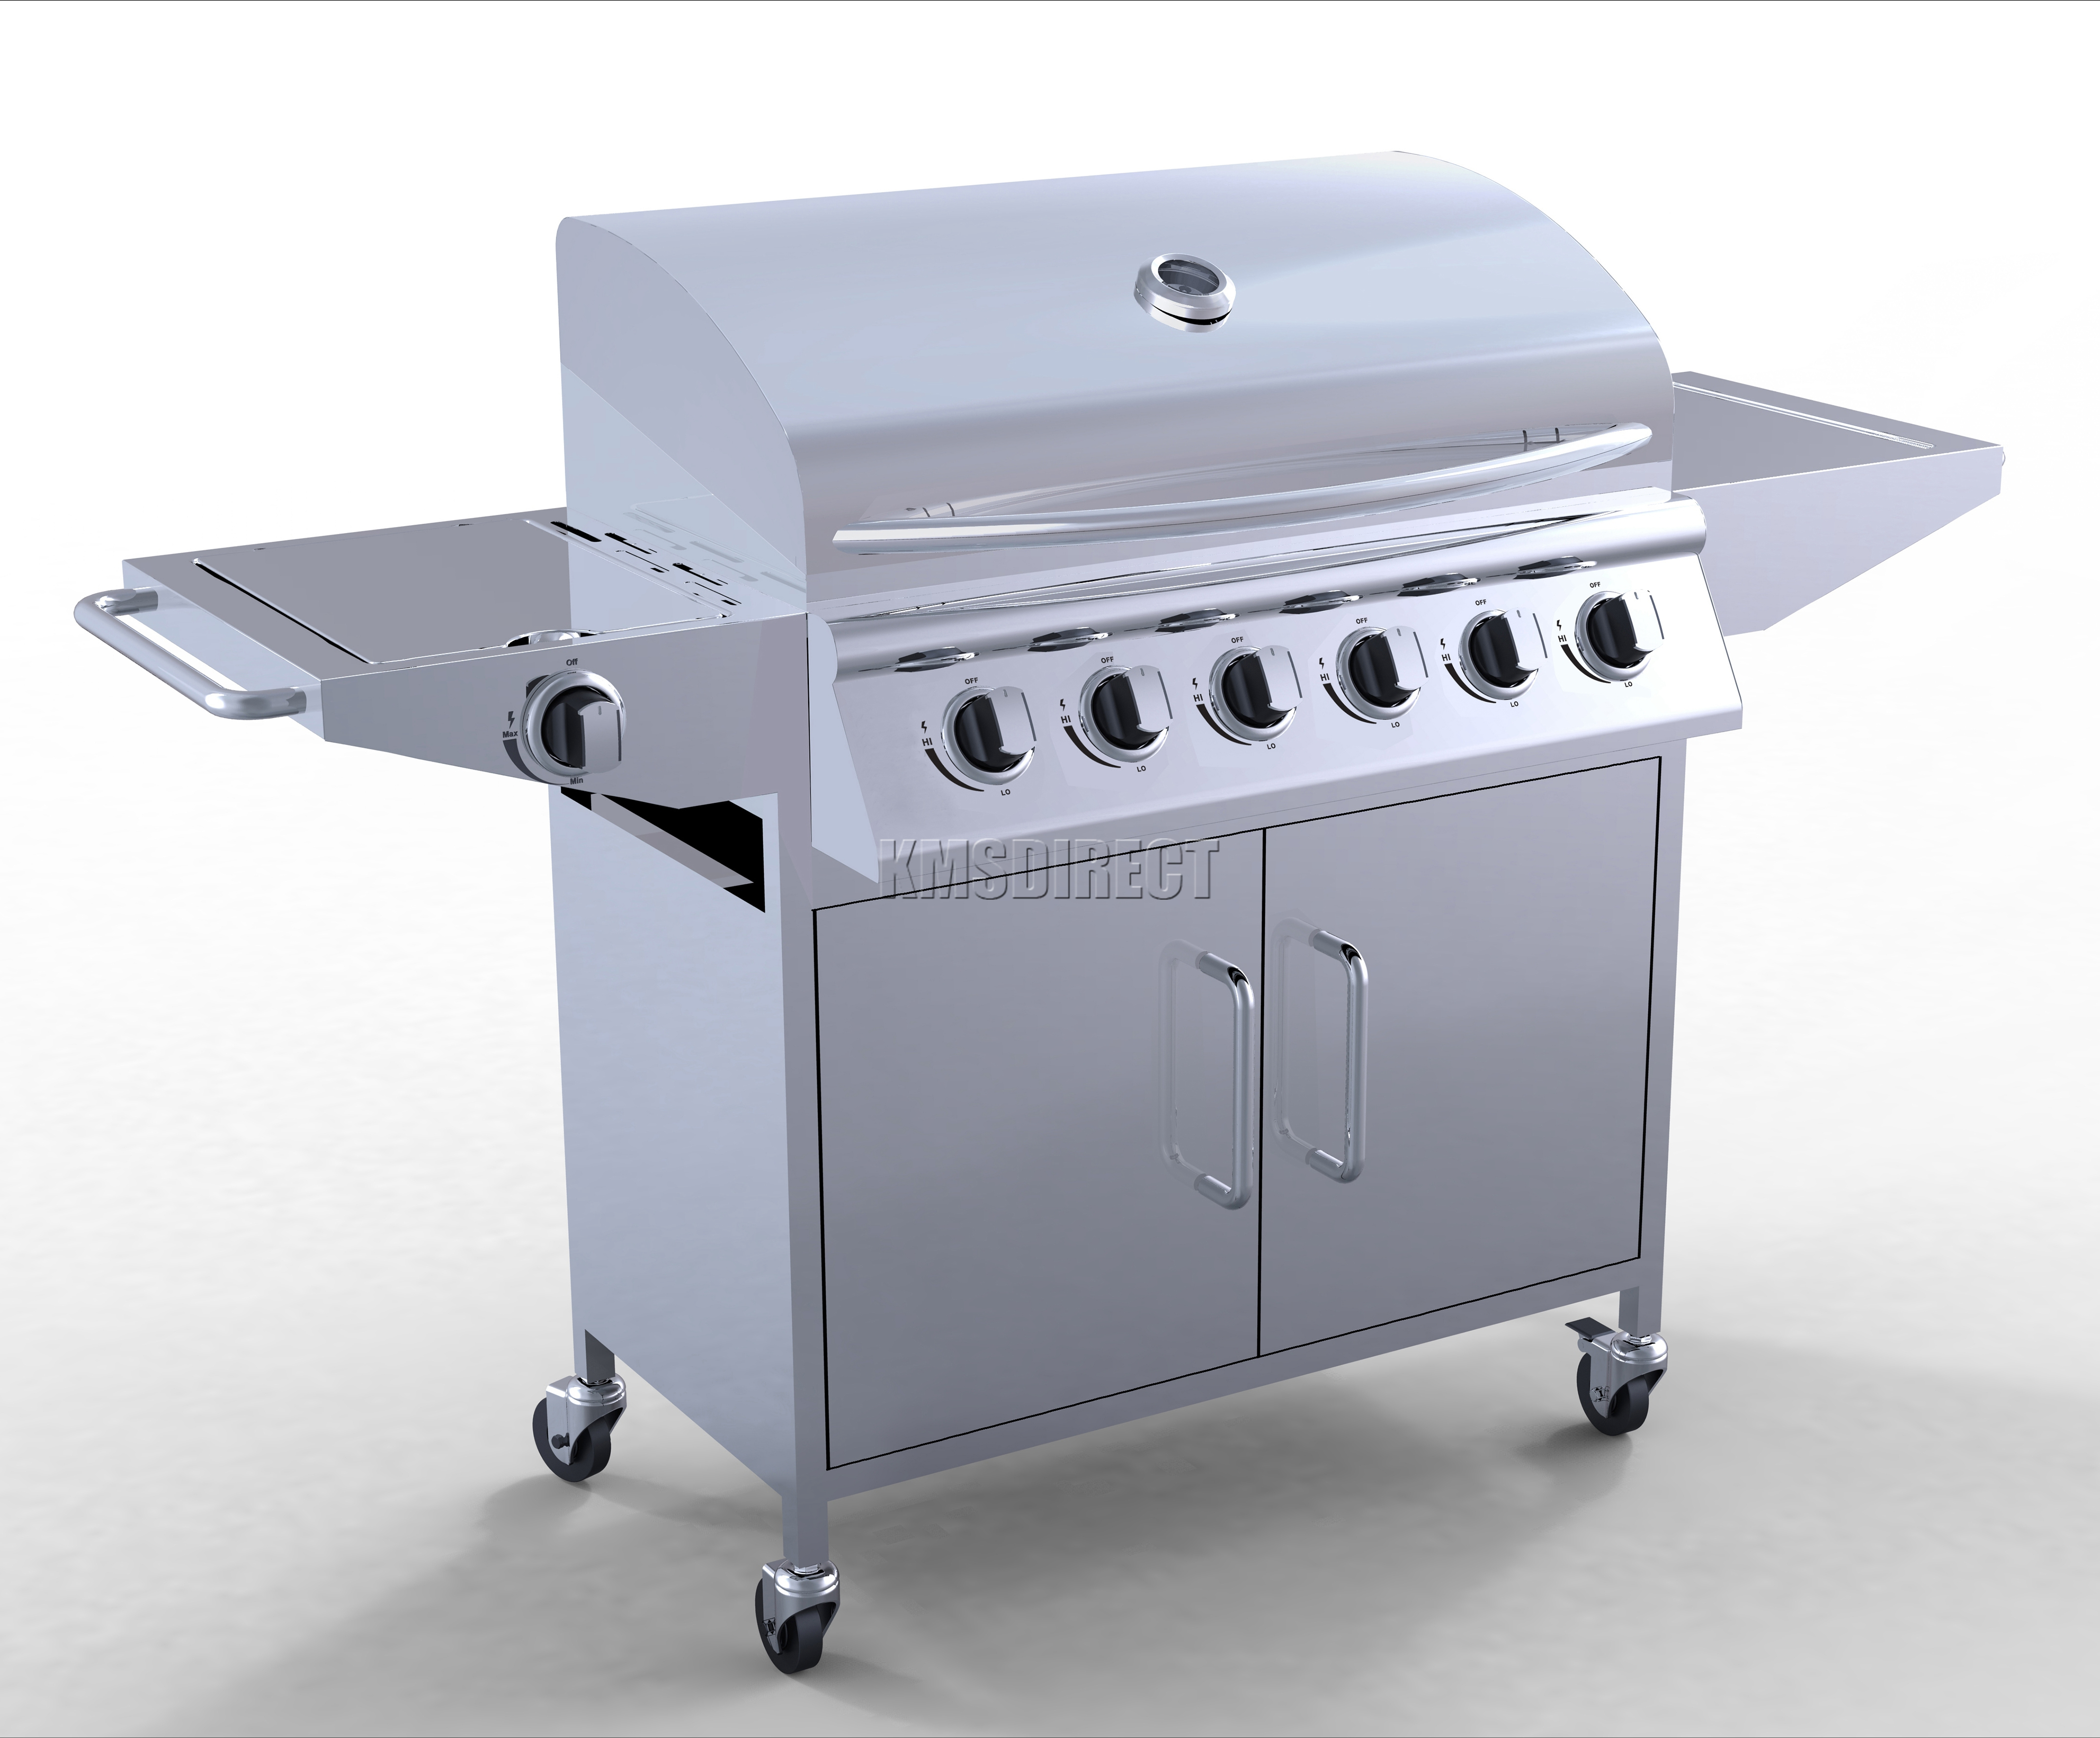 Burner bbq gas grill stainless steel barbecue side